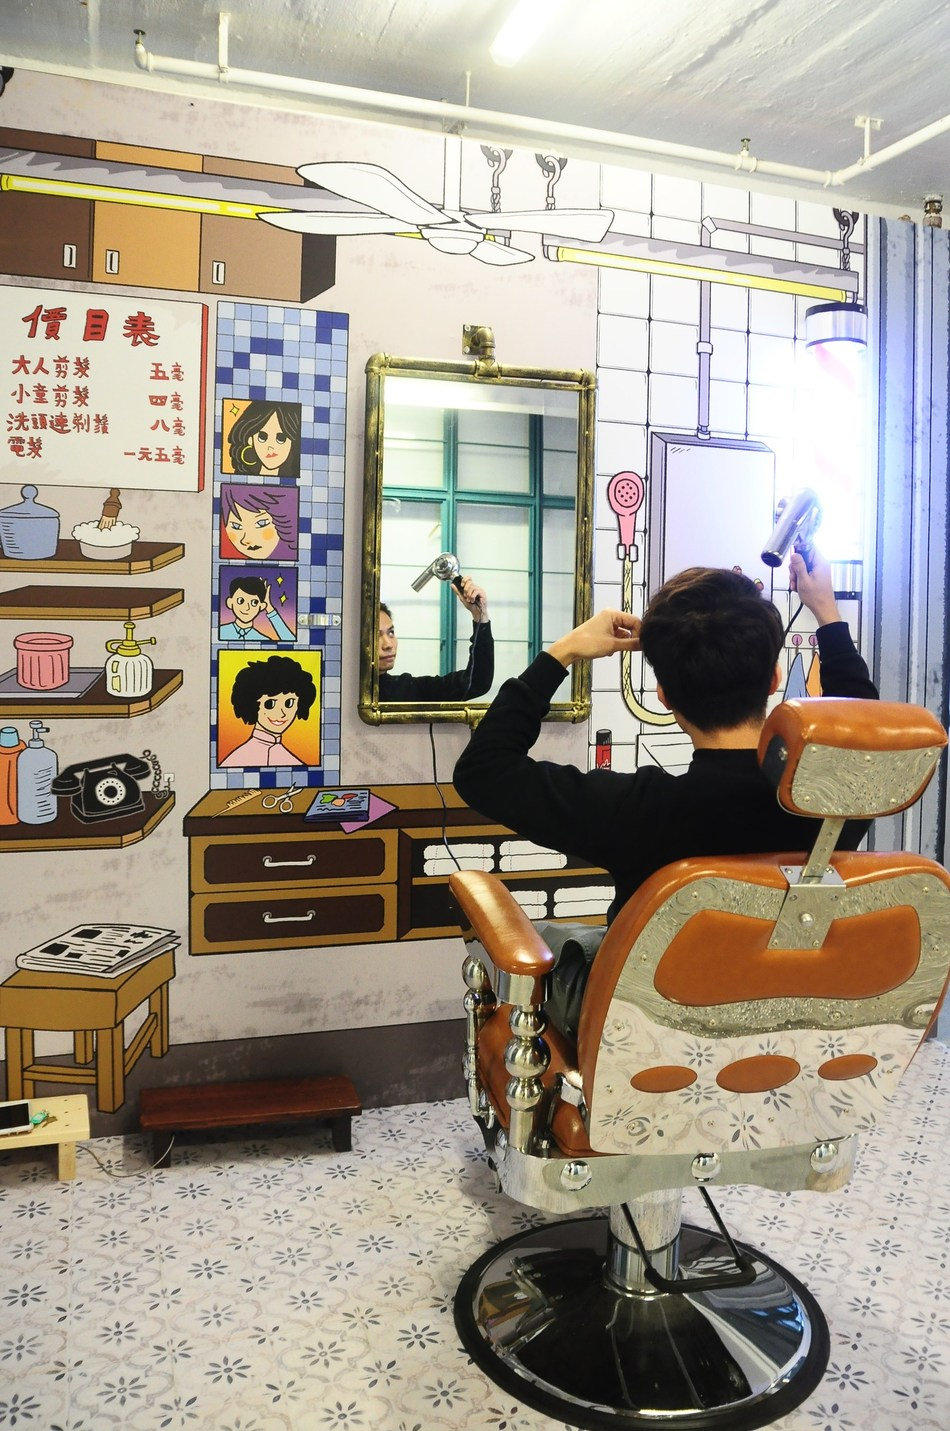 Traditional Barber Stall: Tri-coloured barber poles, silver stainless steel scissors, high-back leather barber chair… all of these were once the symbols of traditional hair salons. These traditional barber stalls are progressively replaced by modern hair salons and are no longer a familiar sight in Central. This exhibition brings the traditional barber stall back to life and allows visitors to step back into the decade.